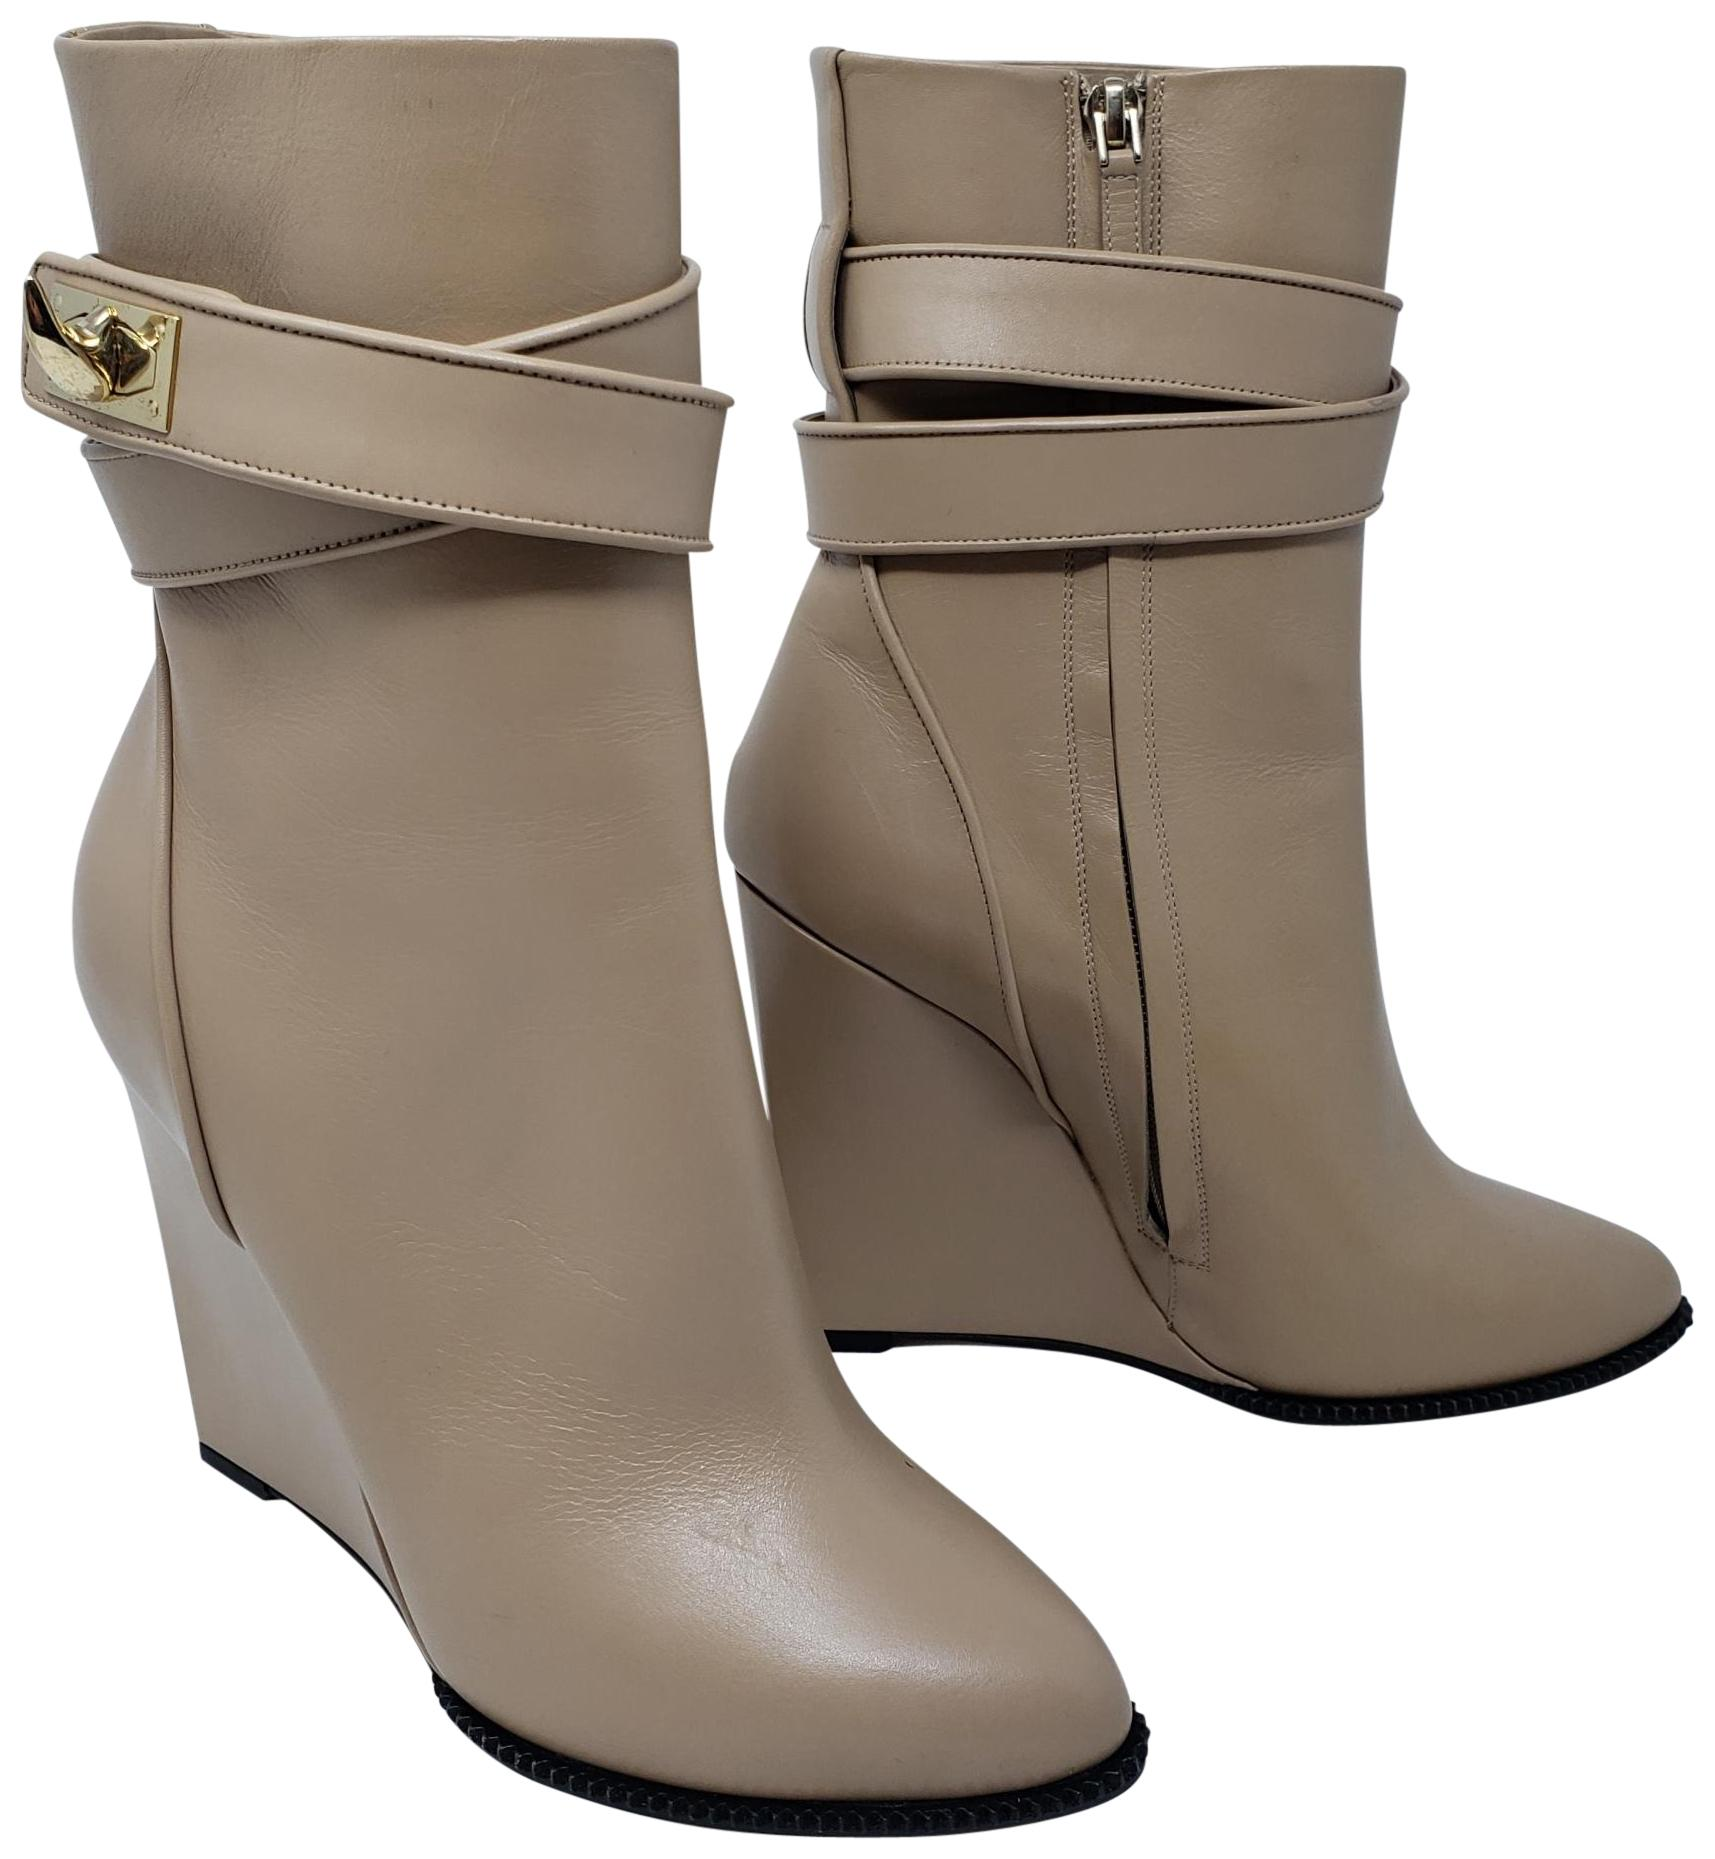 846822c5a2a Givenchy Beige Gold Gold Gold Tan Leather Pointed-toe Mid-calf Boots Booties